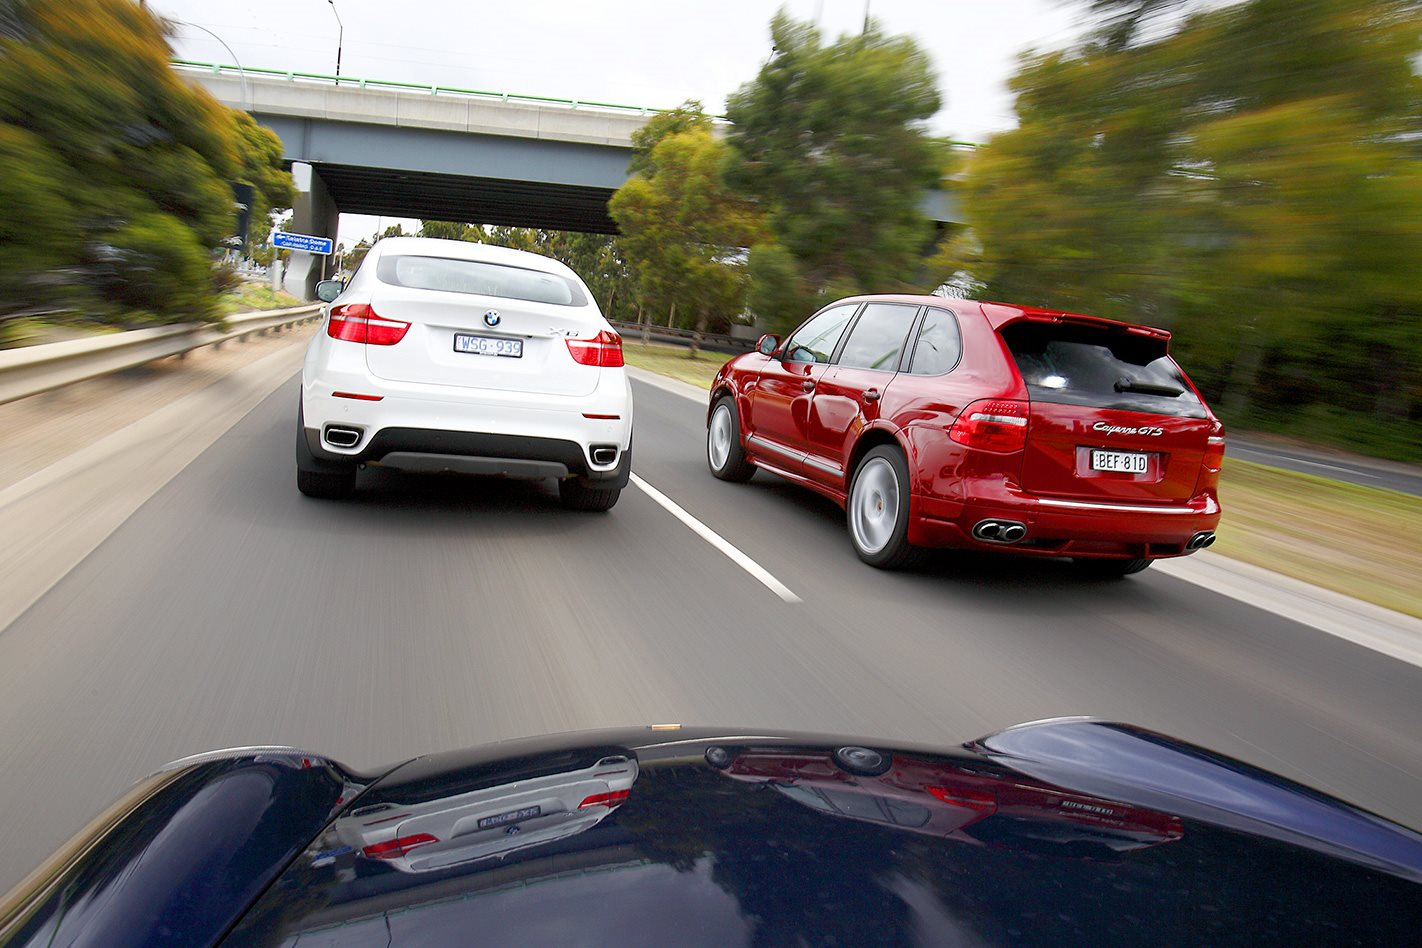 Porsche Cayenne GTS vs BMW X6 rear